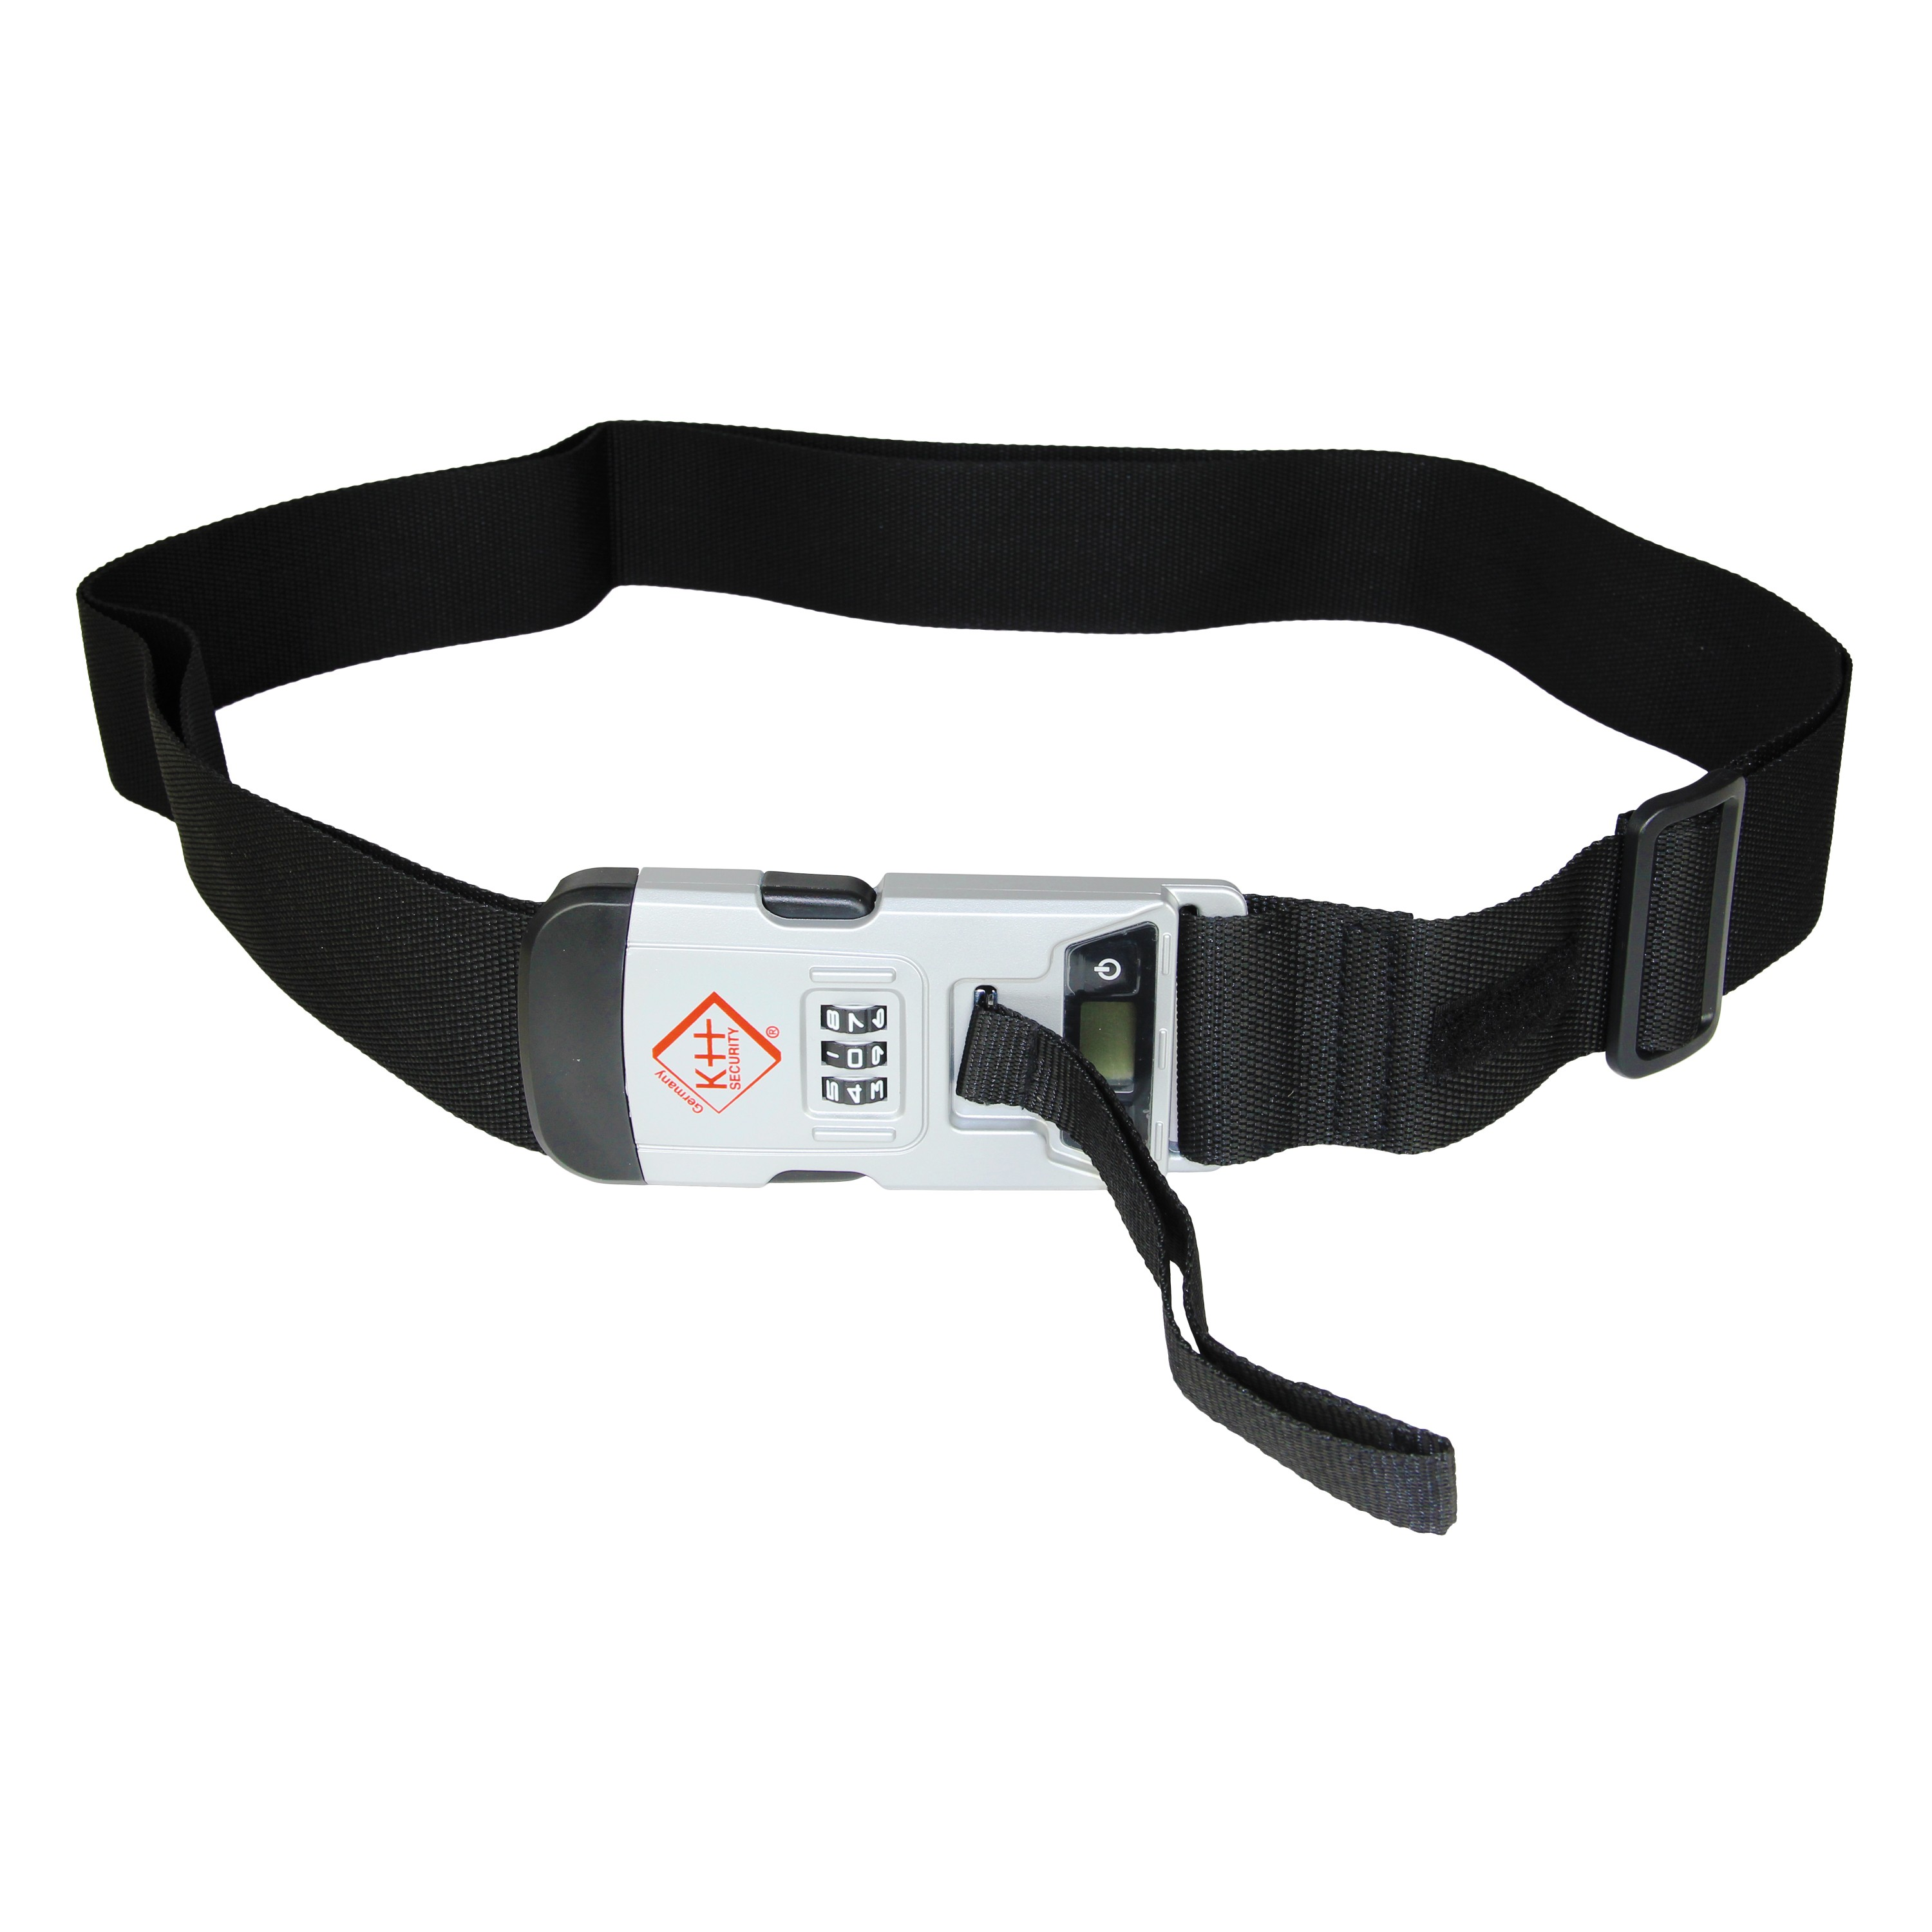 Luggage Strap with Integrated Digital Scale 2 in 1